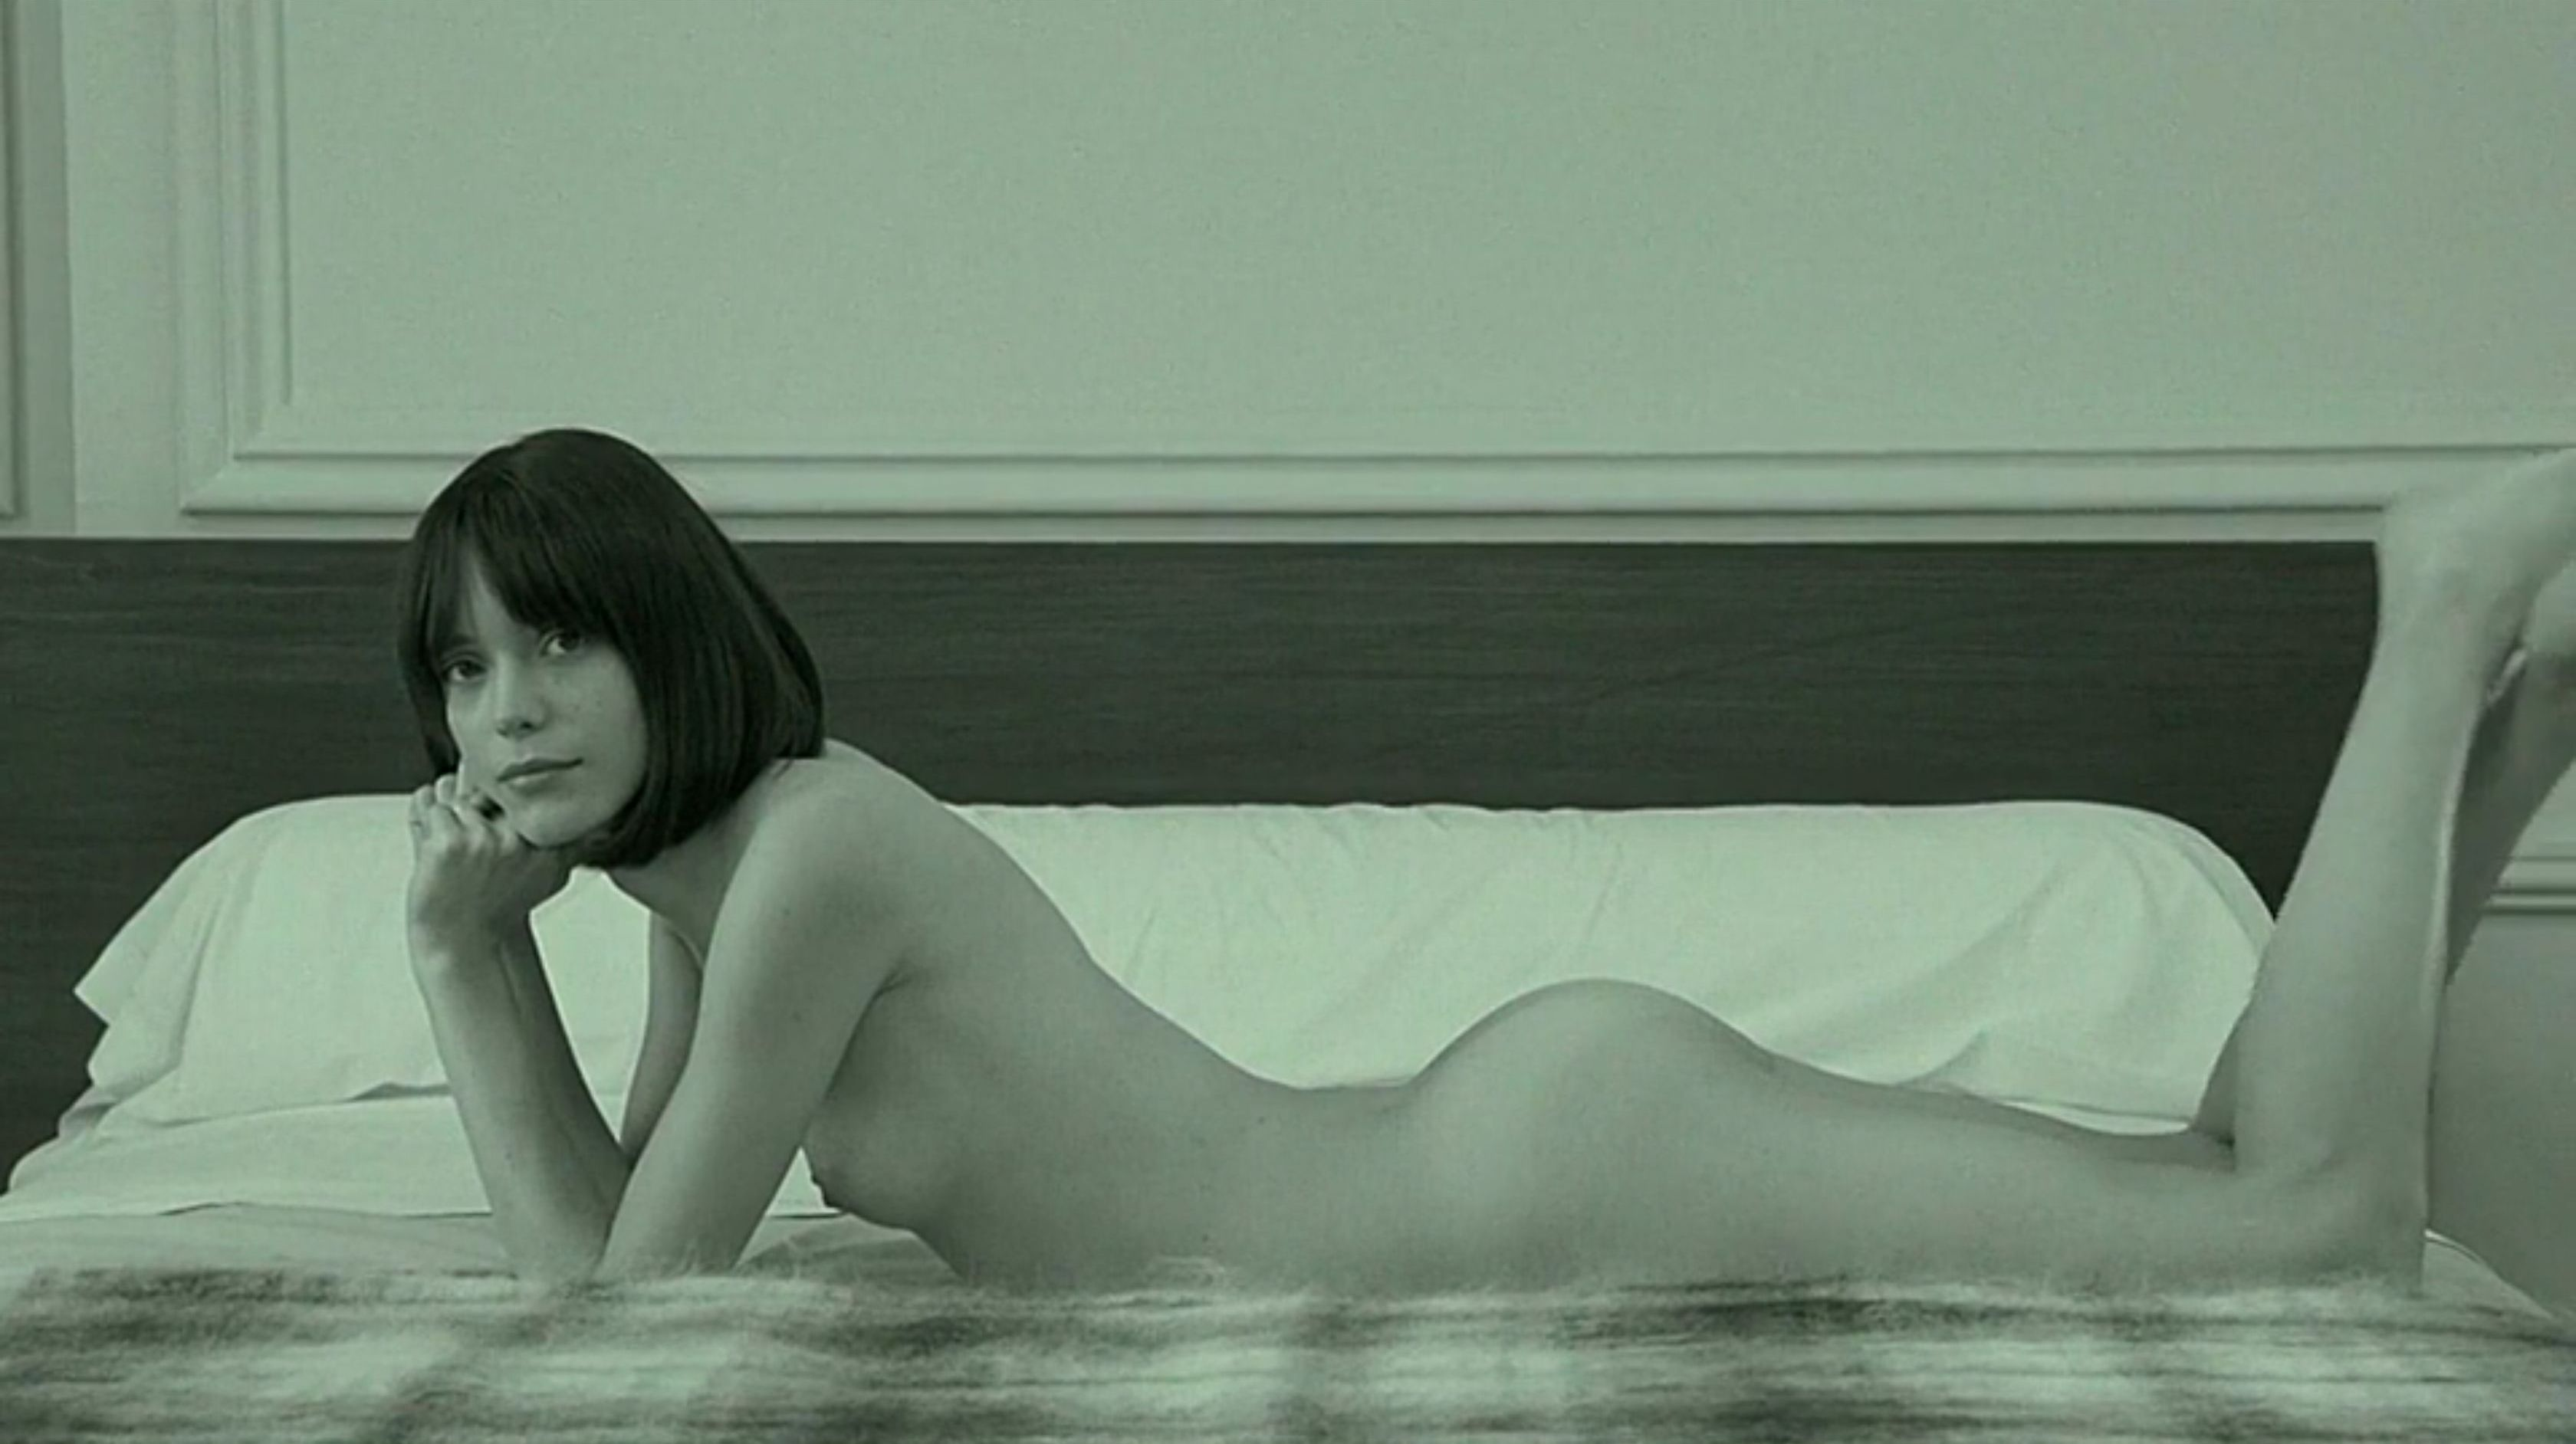 Stacy-Martin-Nude-Le-Redoutable-2017-6-The-Fappening-Blog.jpg